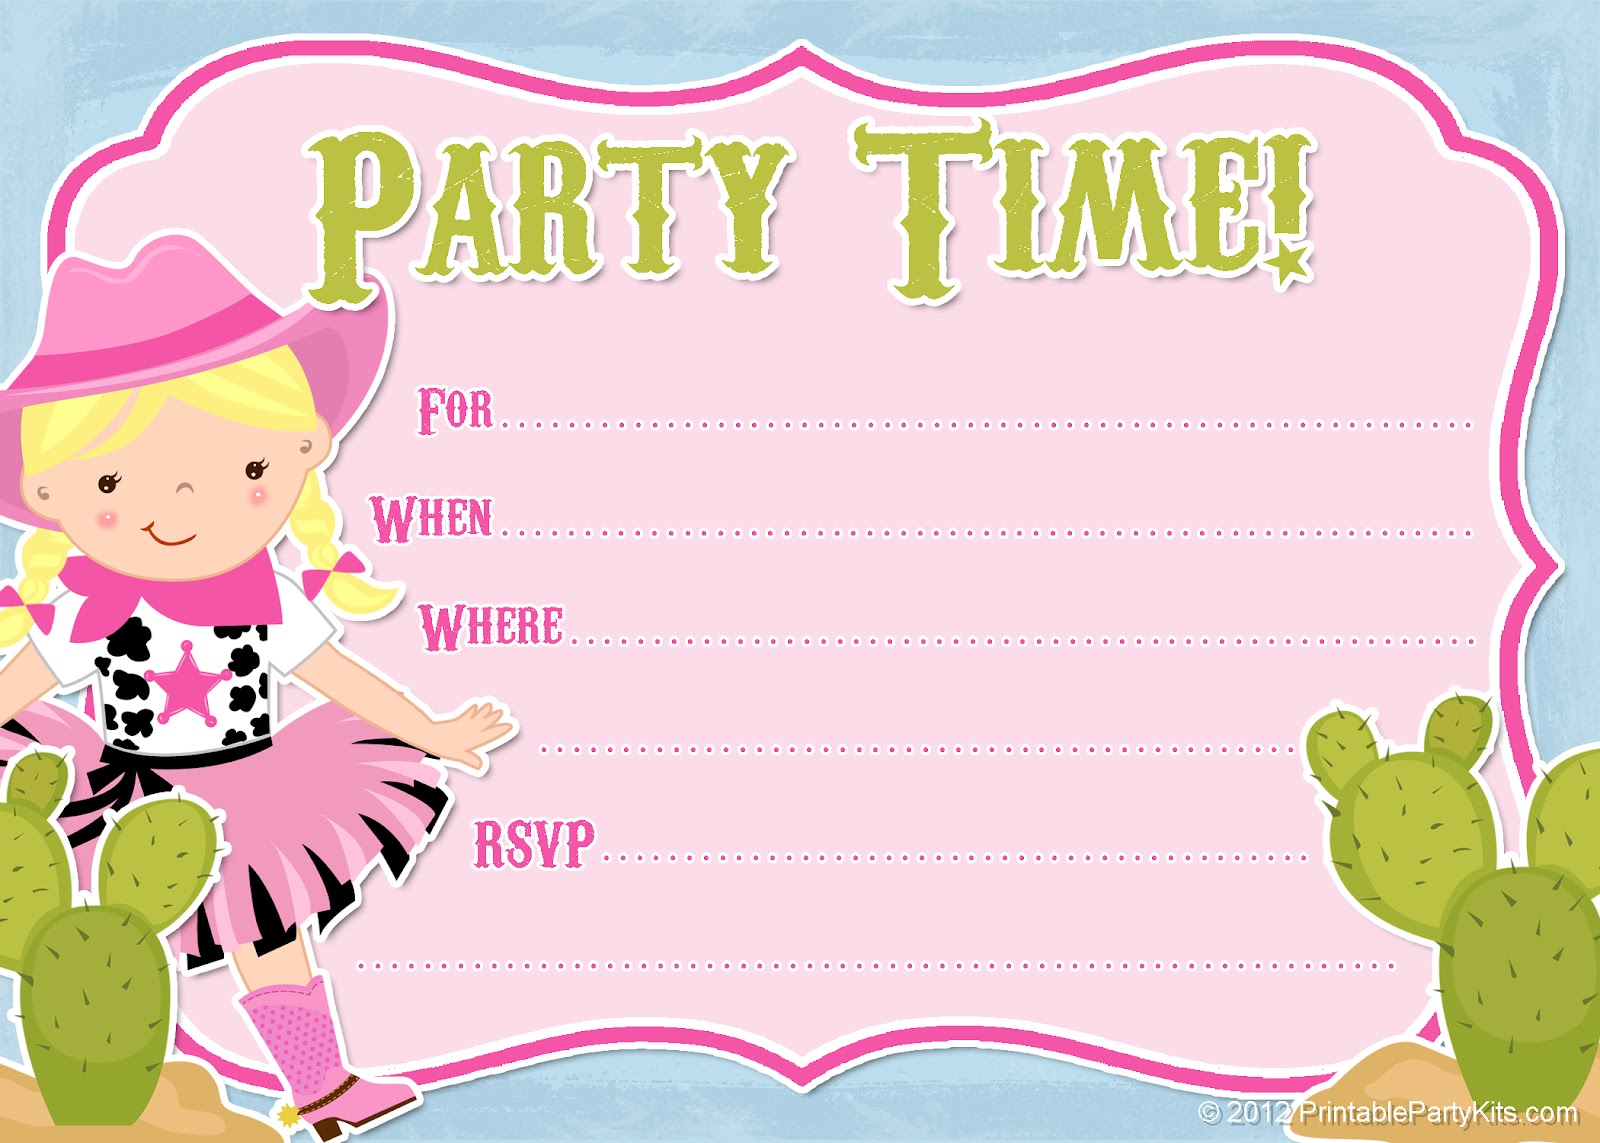 free cowgirl birthday invitation templates ; cowgirl-party-invitations-with-some-beautification-for-your-Party-Invitation-Templates-to-serve-glamorous-environment-5